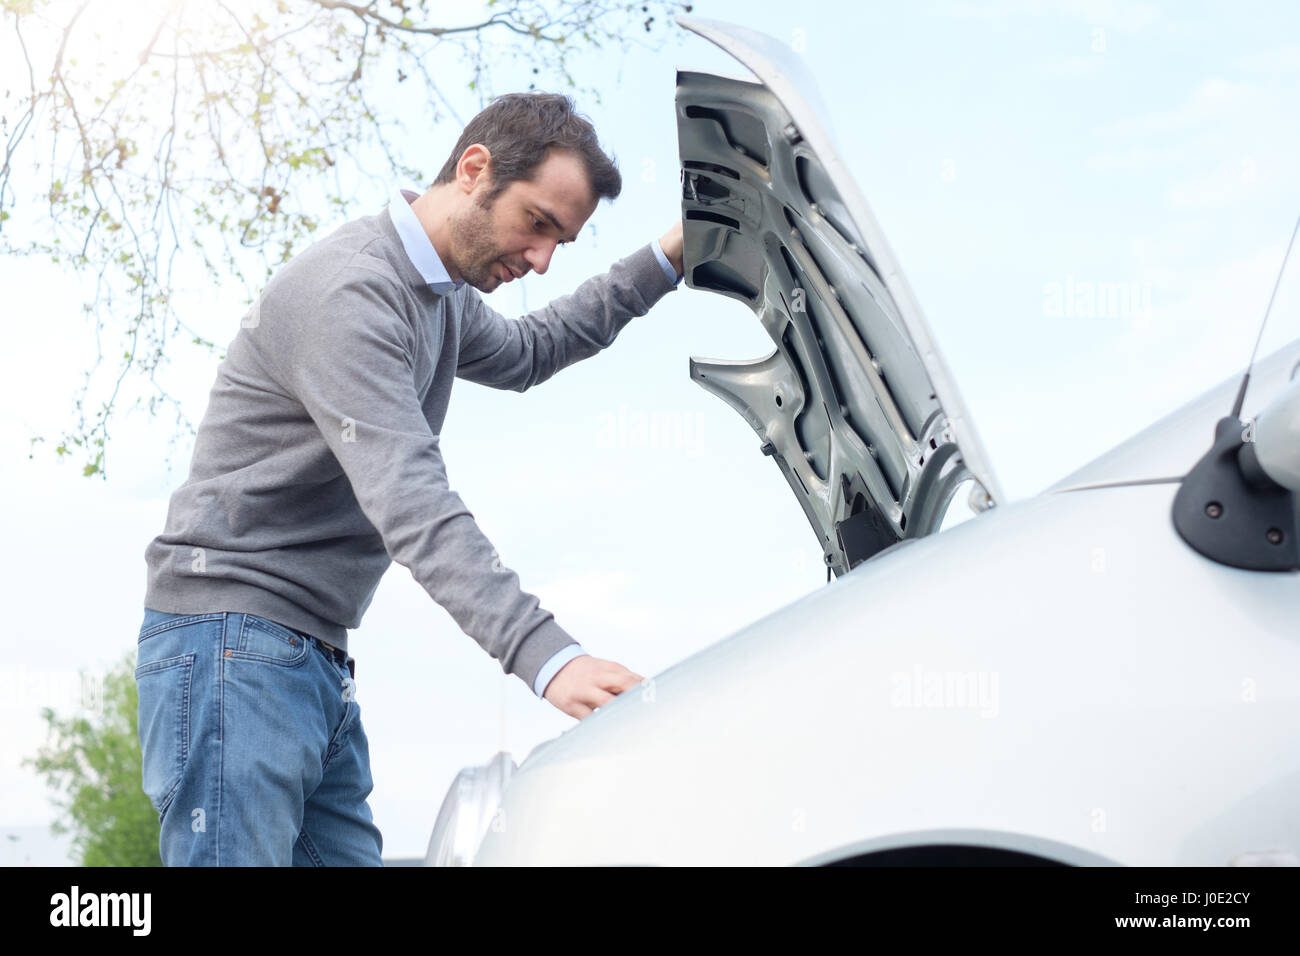 Stressed man checking engine after vehicle breakdown - Stock Image